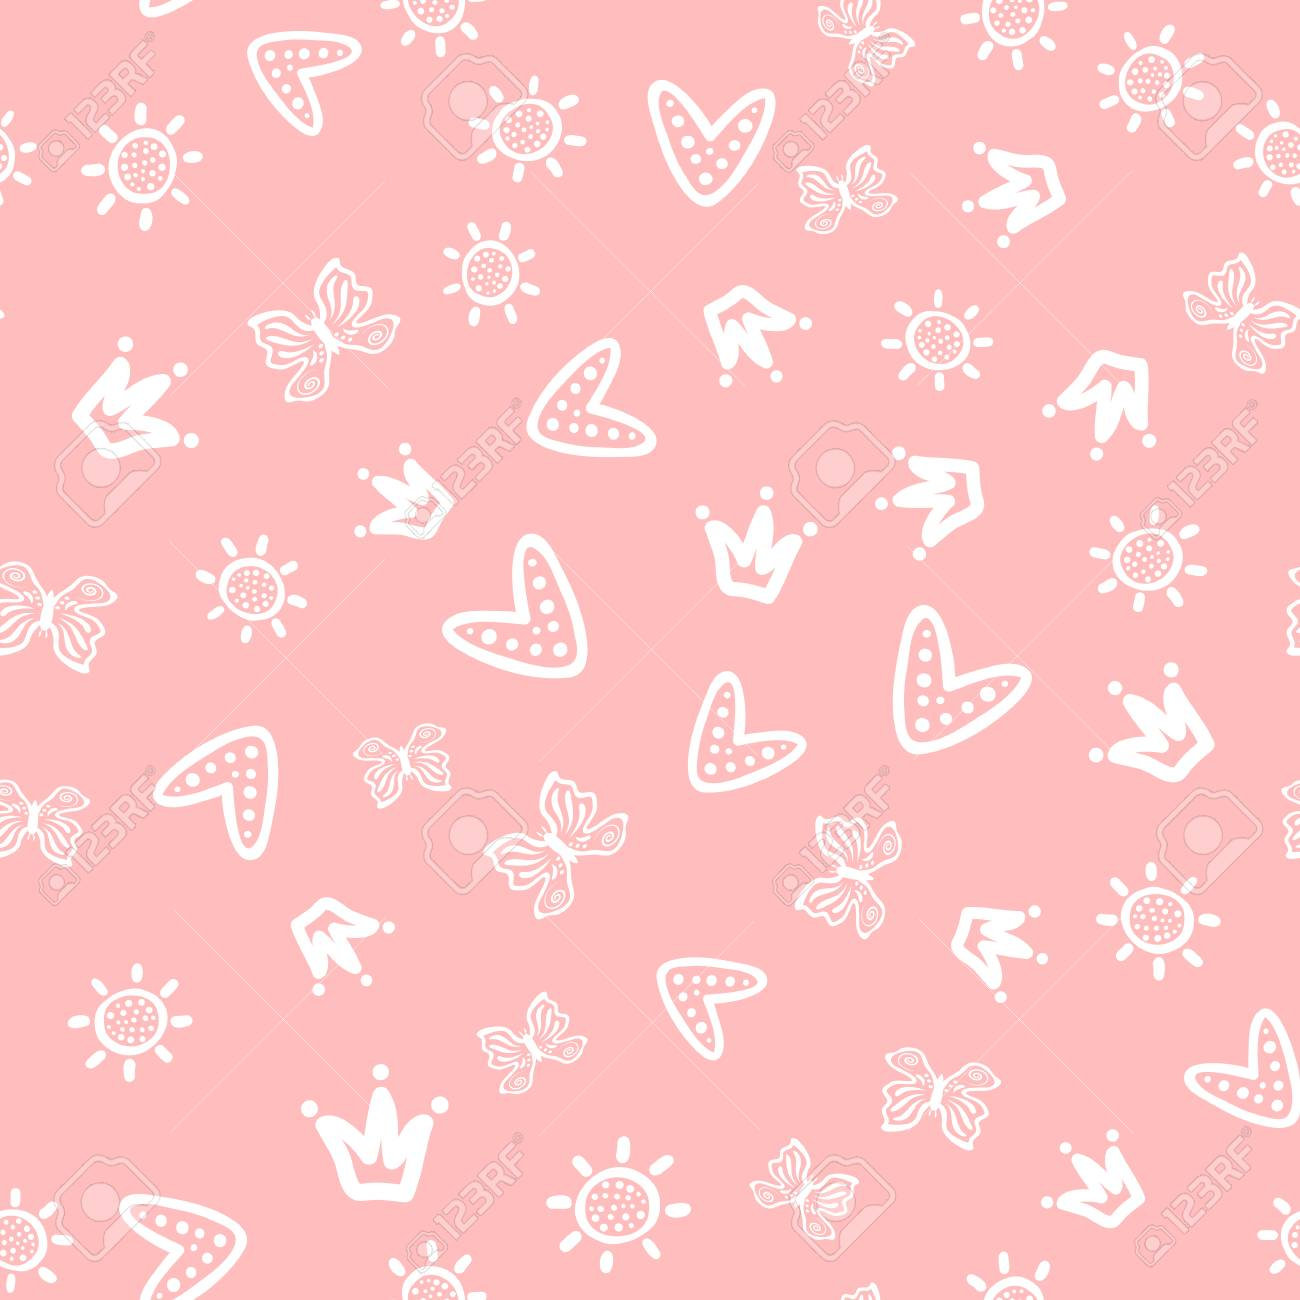 Sun Butterflies Hearts And Crowns Drawn By Hand Cute Girly Seamless Pattern